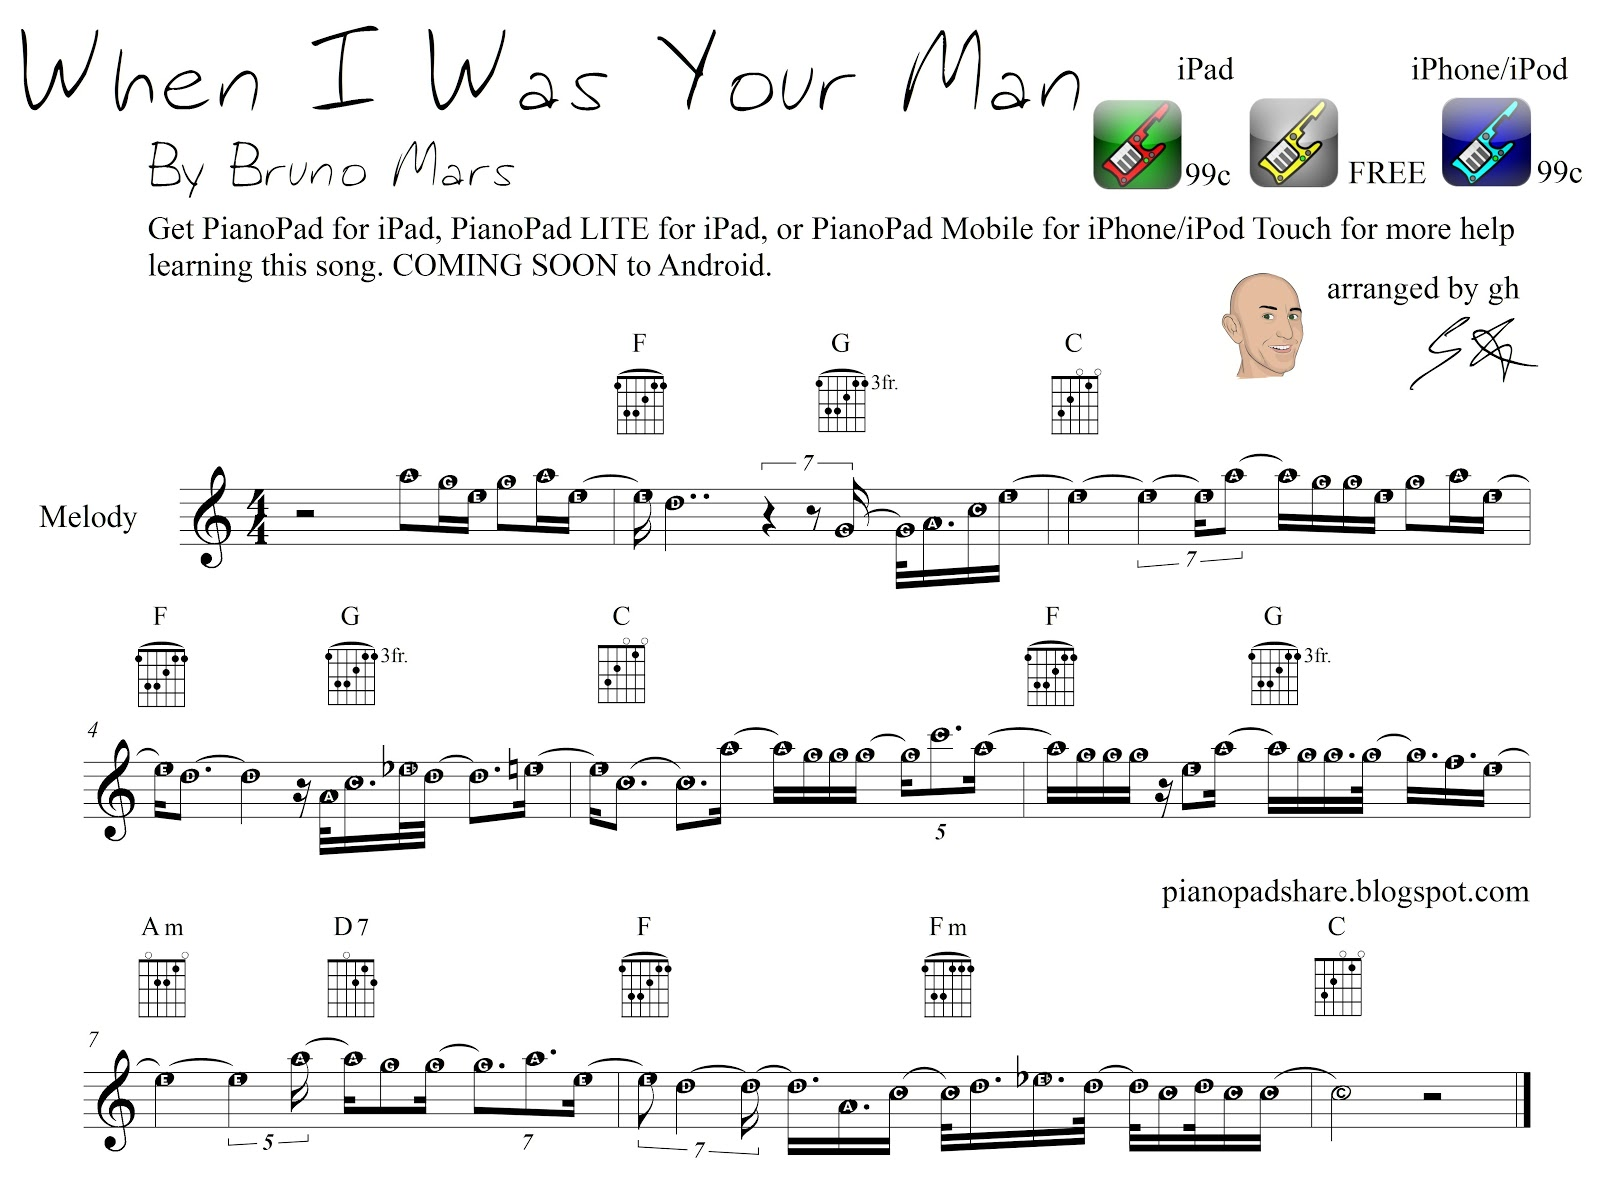 PianoPad Upload Community: u0026quot;When I Was Your Manu0026quot; by Bruno Mars - uploaded by GH